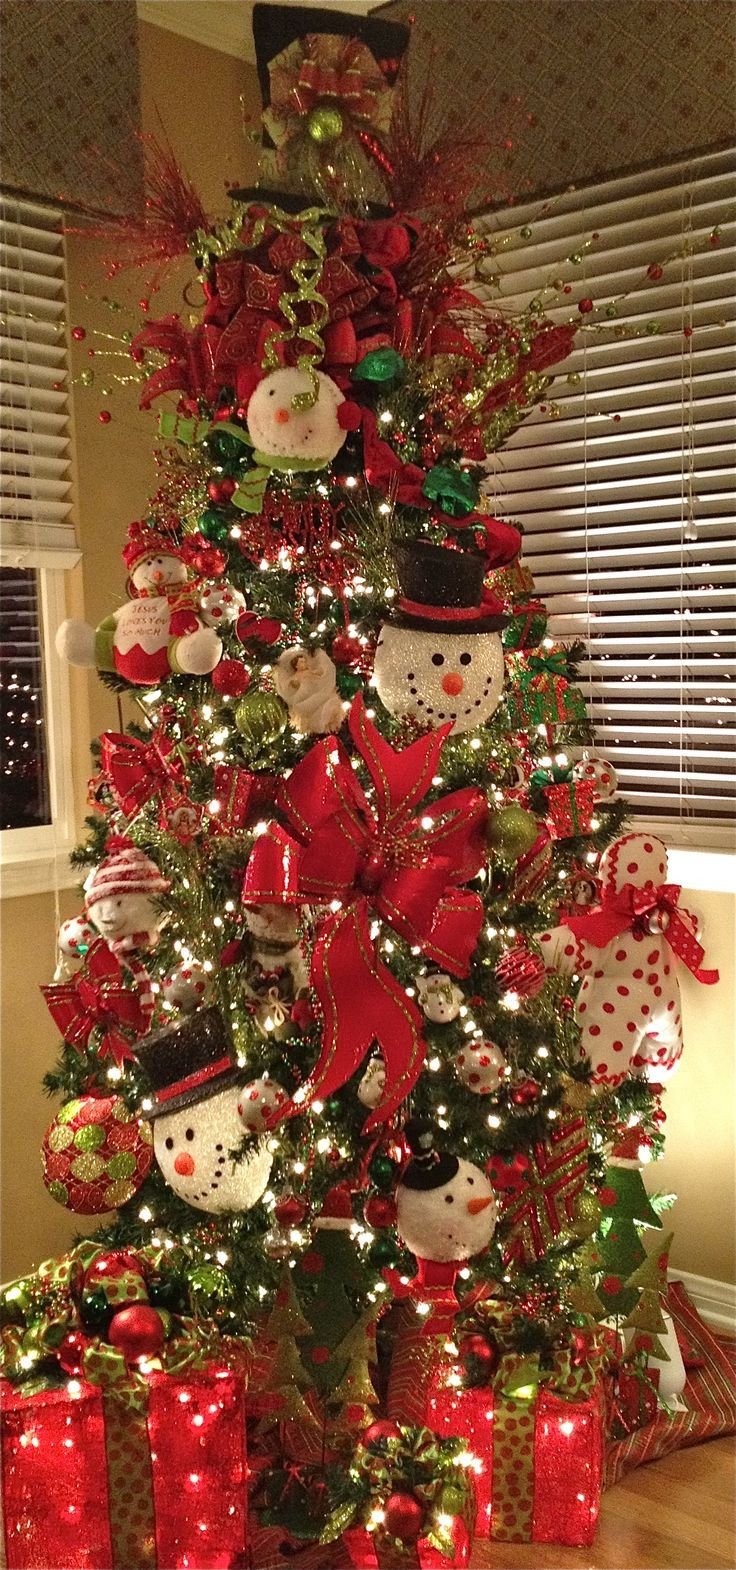 Snowman Christmas Tree | Christmas Trees